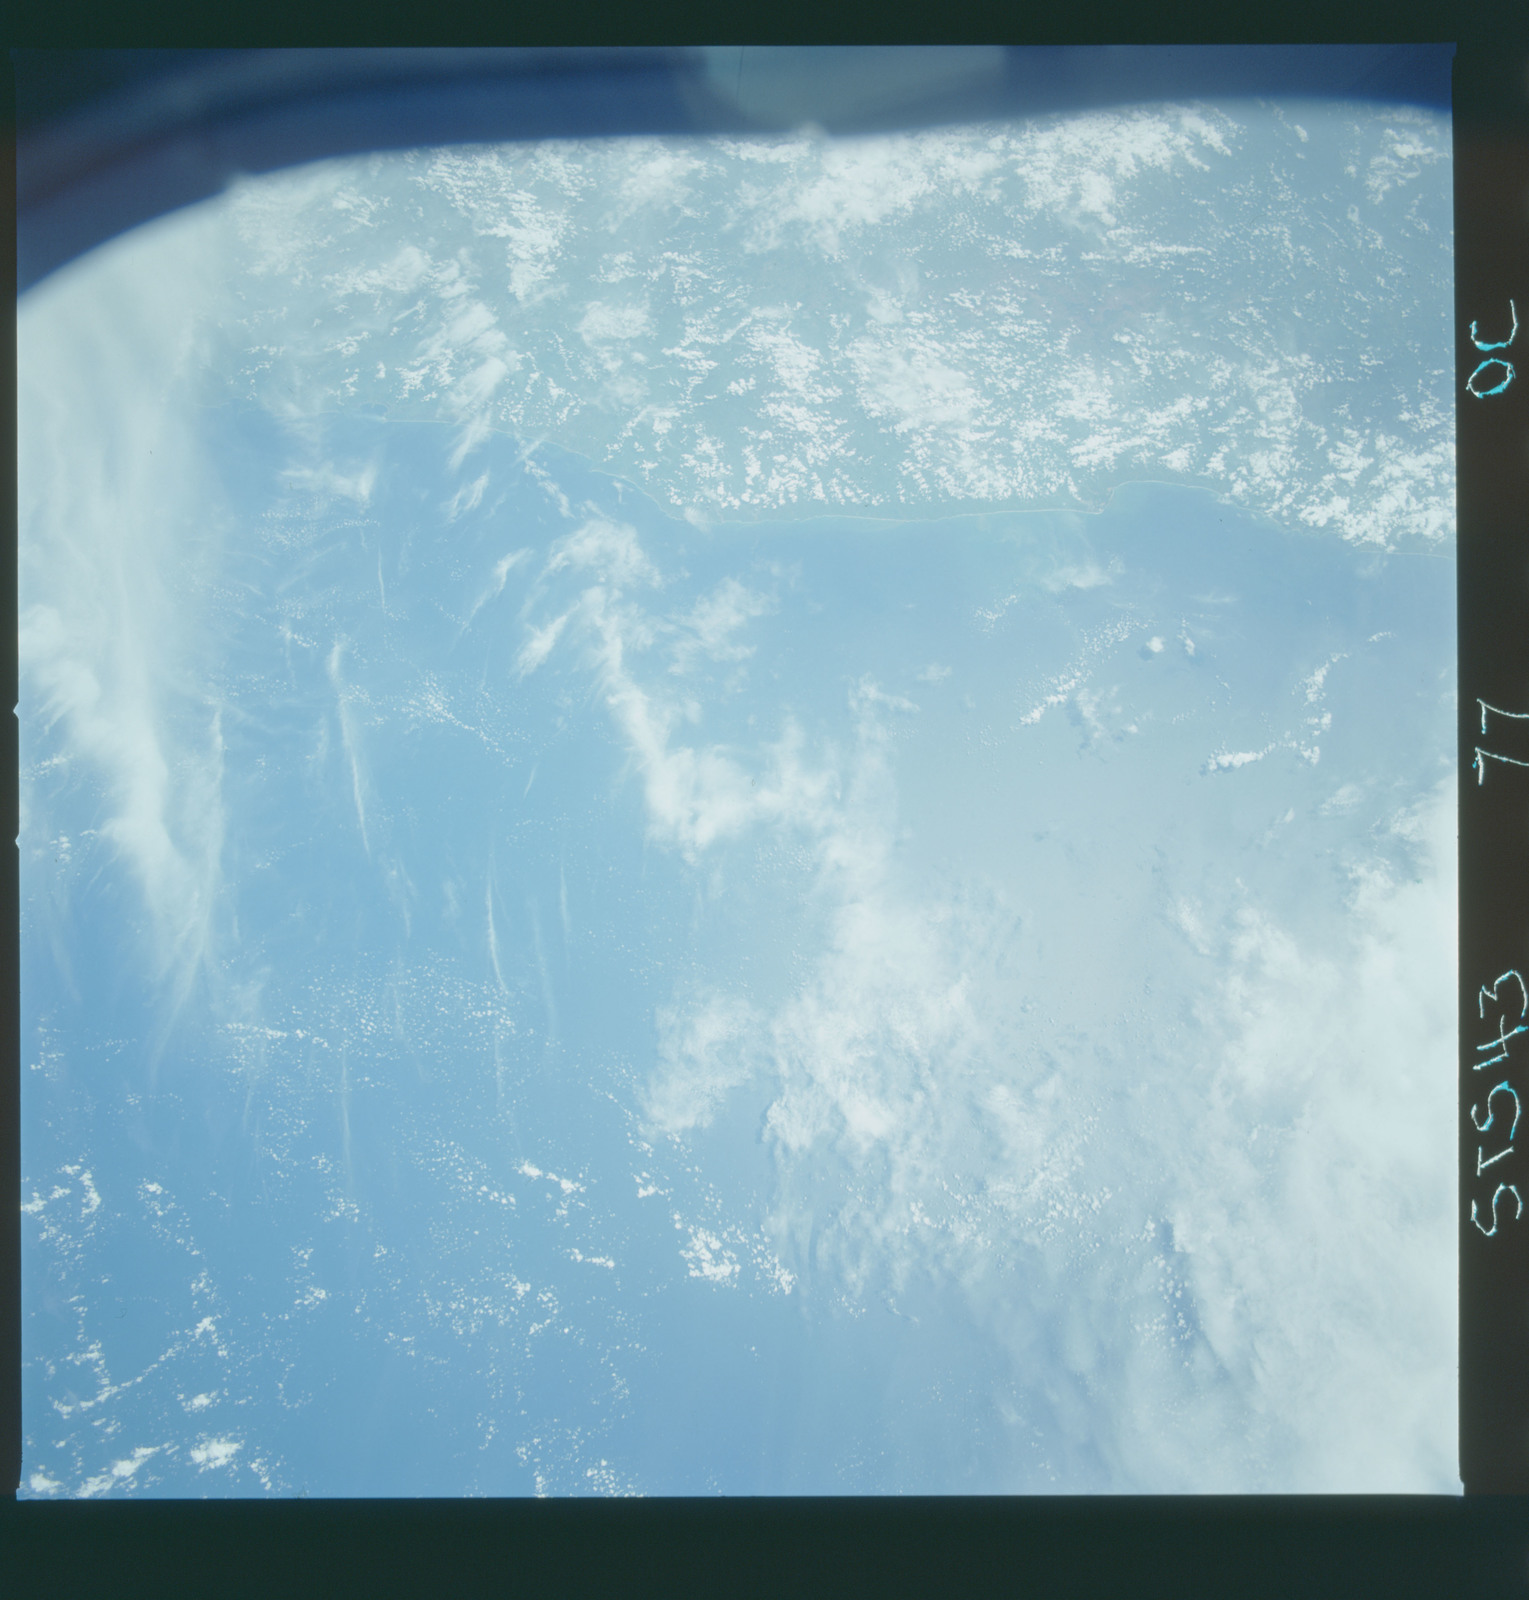 S43-77-000C - STS-043 - STS-43 earth observations